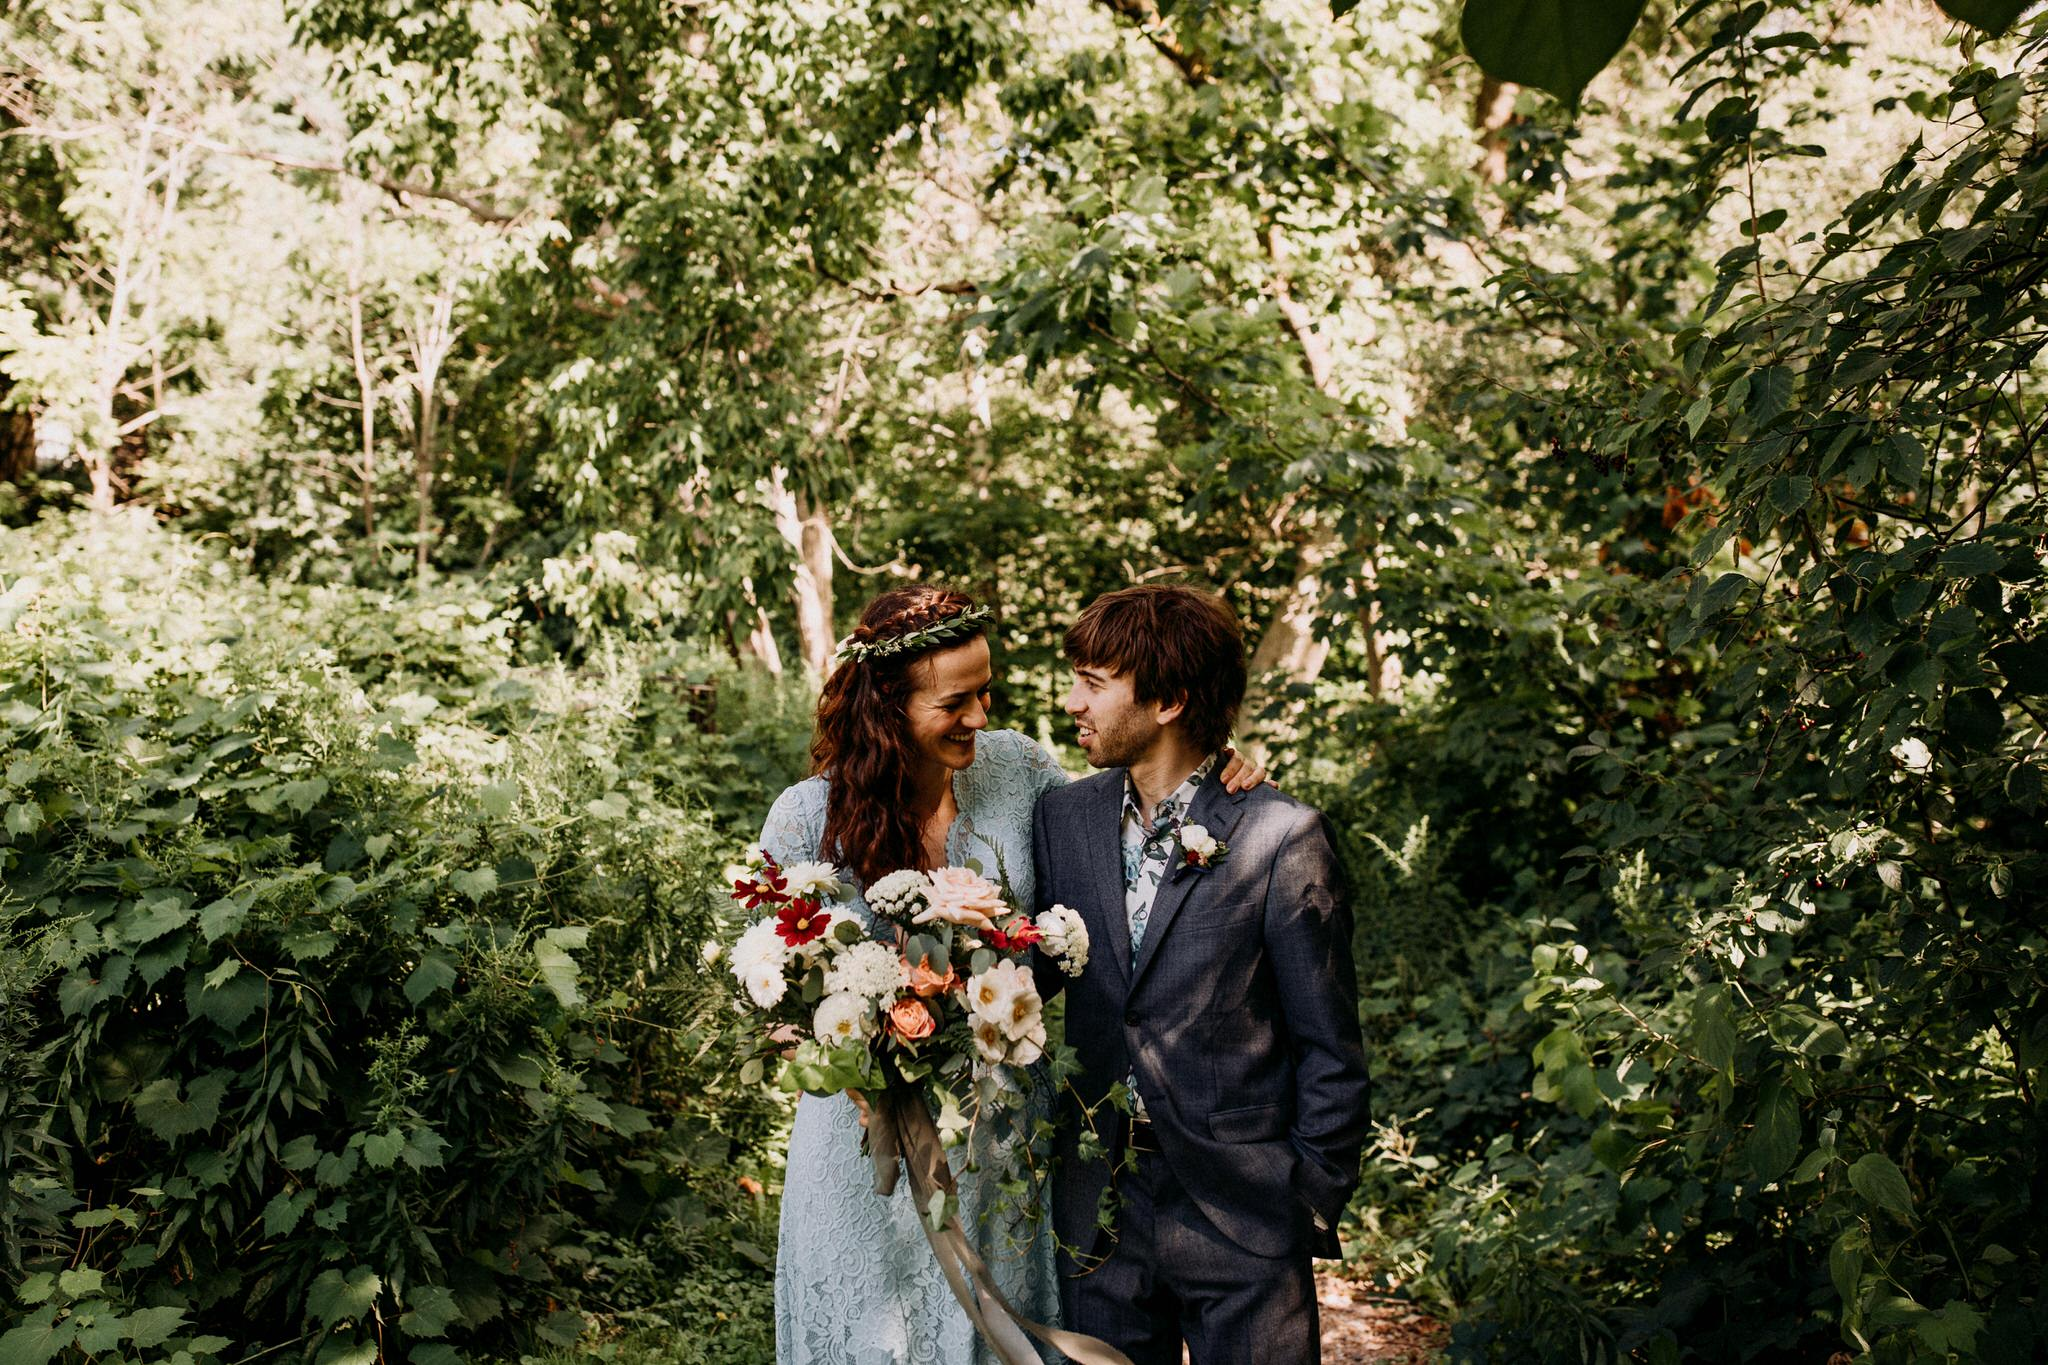 Merchants of Green Coffee Wedding - strolling through the forest